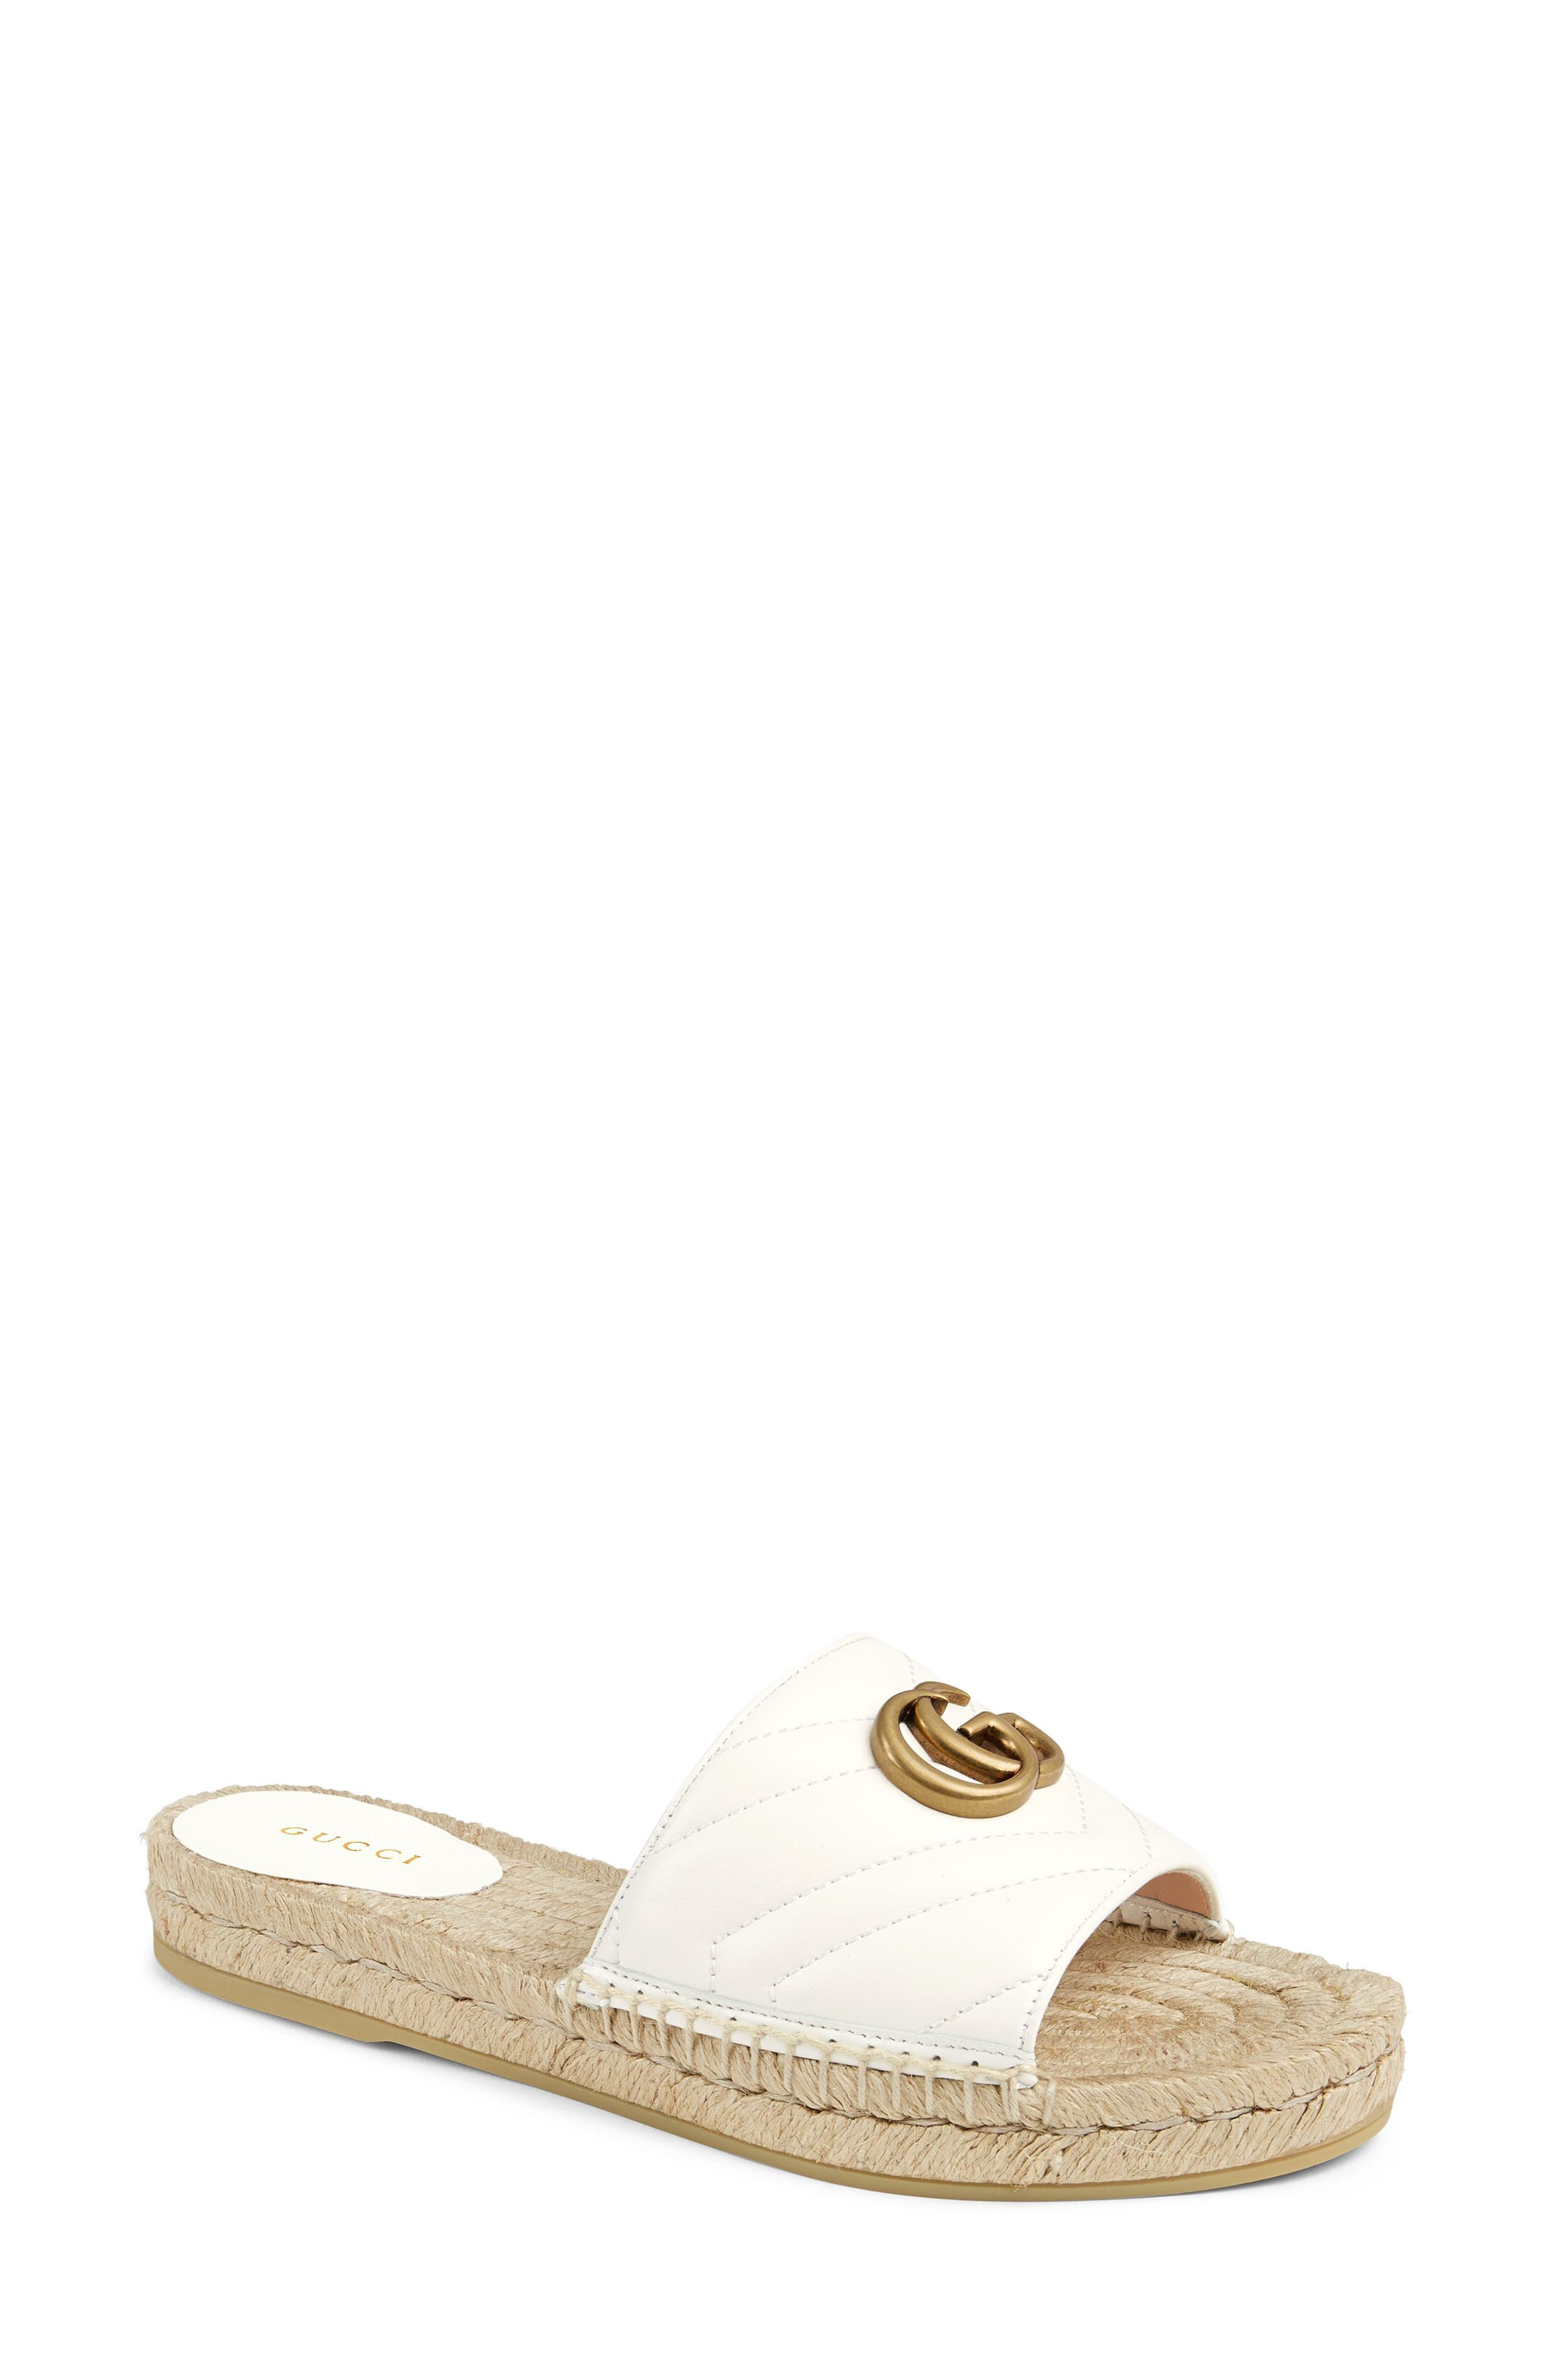 6b829b07903 Gucci Espadrilles for Women